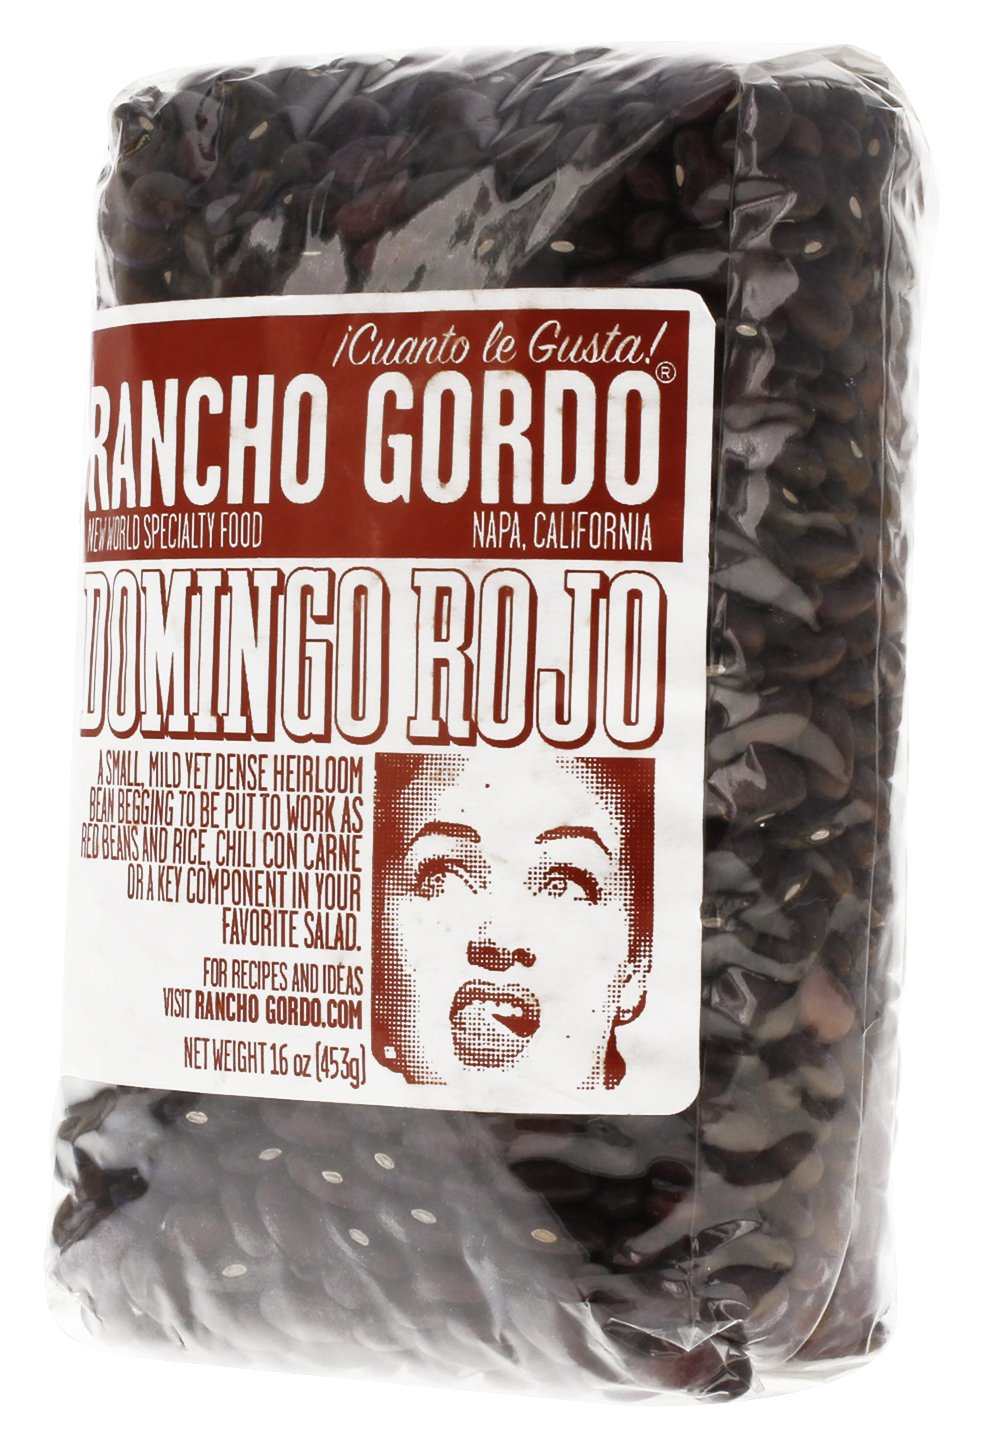 Amazon.com : Rancho Gordo Heirloom Beans - Alubia Blanca, 16 Ounces : Grocery & Gourmet Food